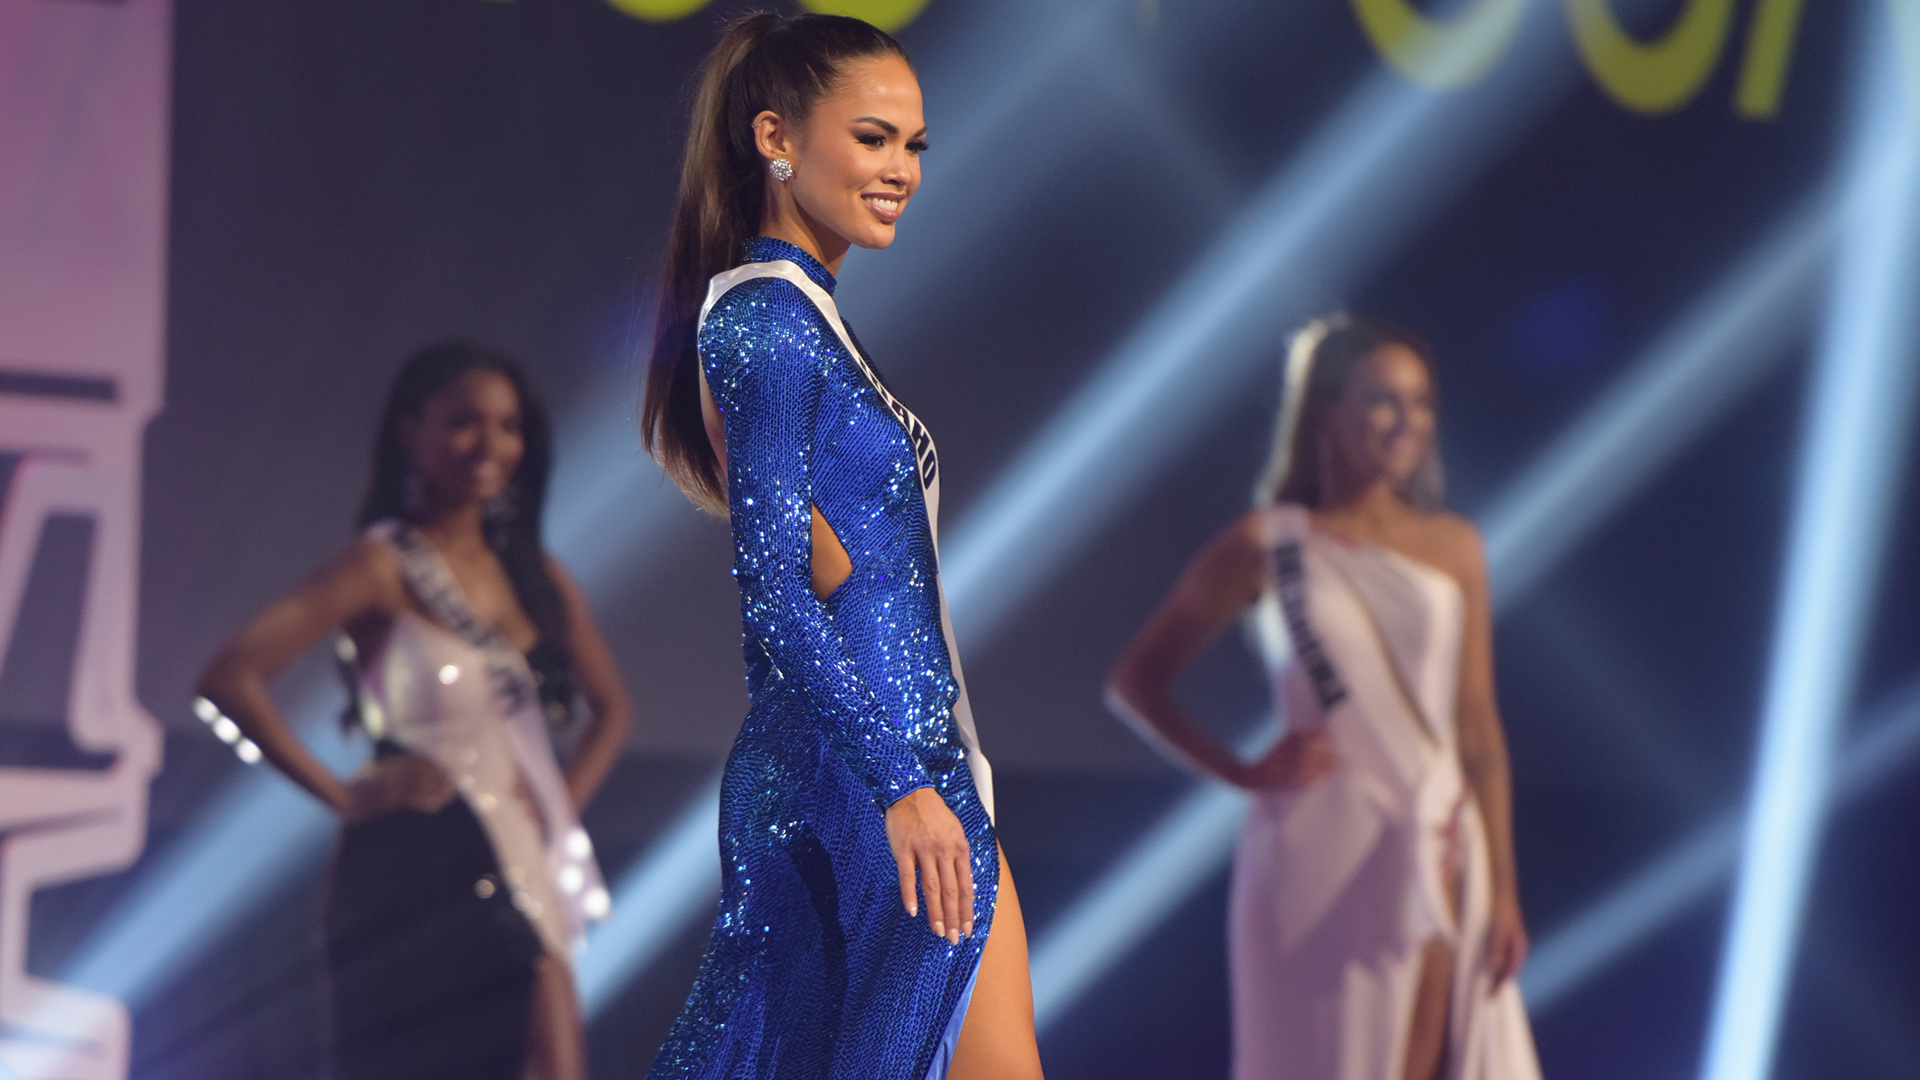 Miss USA runner-up 'knows who she is from the inside out'